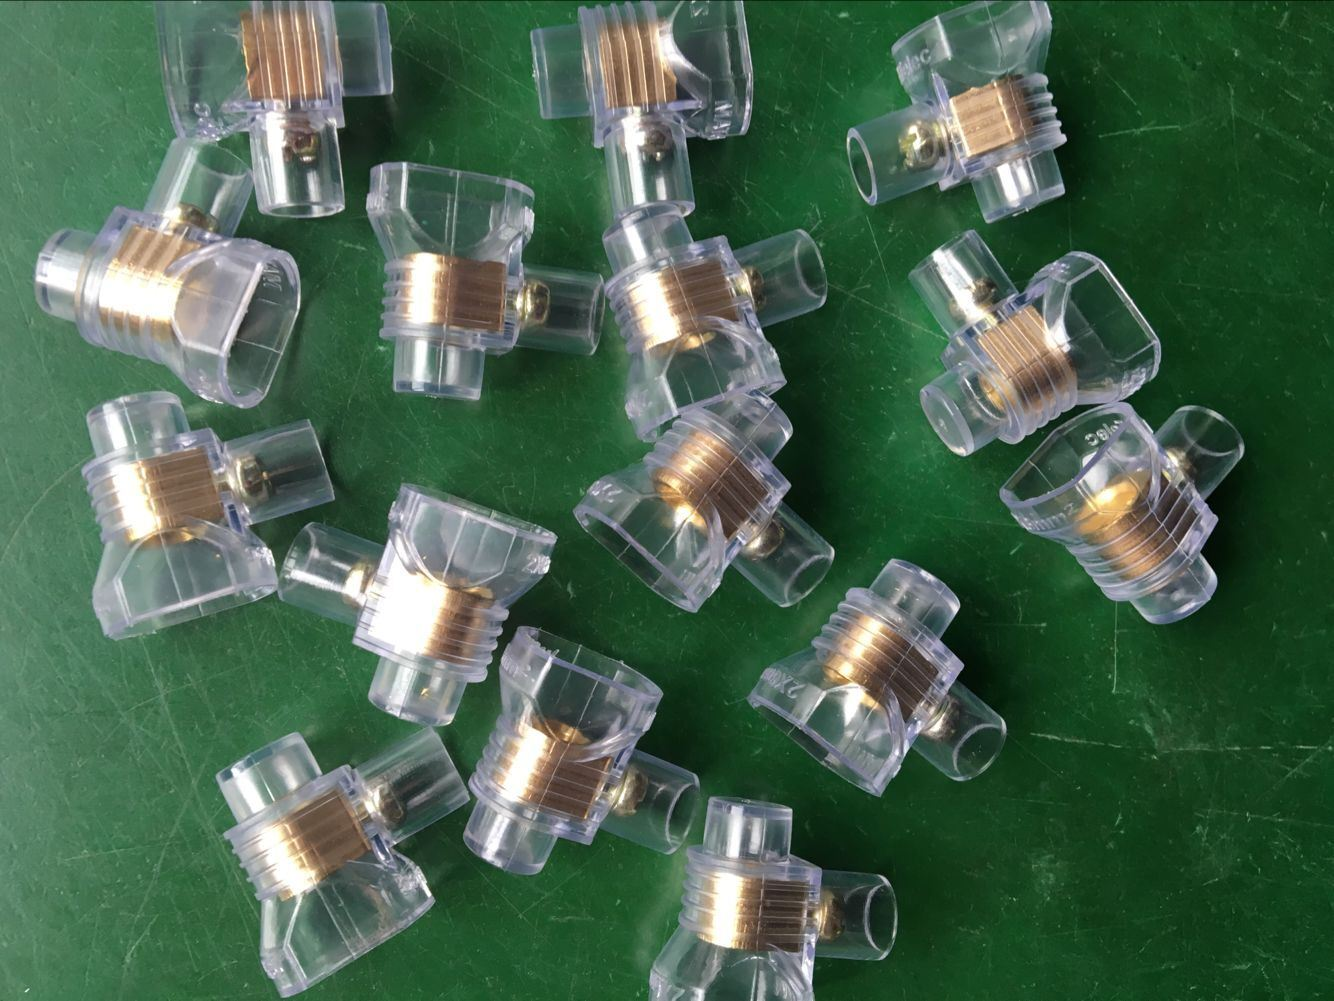 China Australia 35a Single Screw Cable Connector Terminal Block Heat Round Plug Pin Mains View Power Cord Resistant Wire Connectors Pc